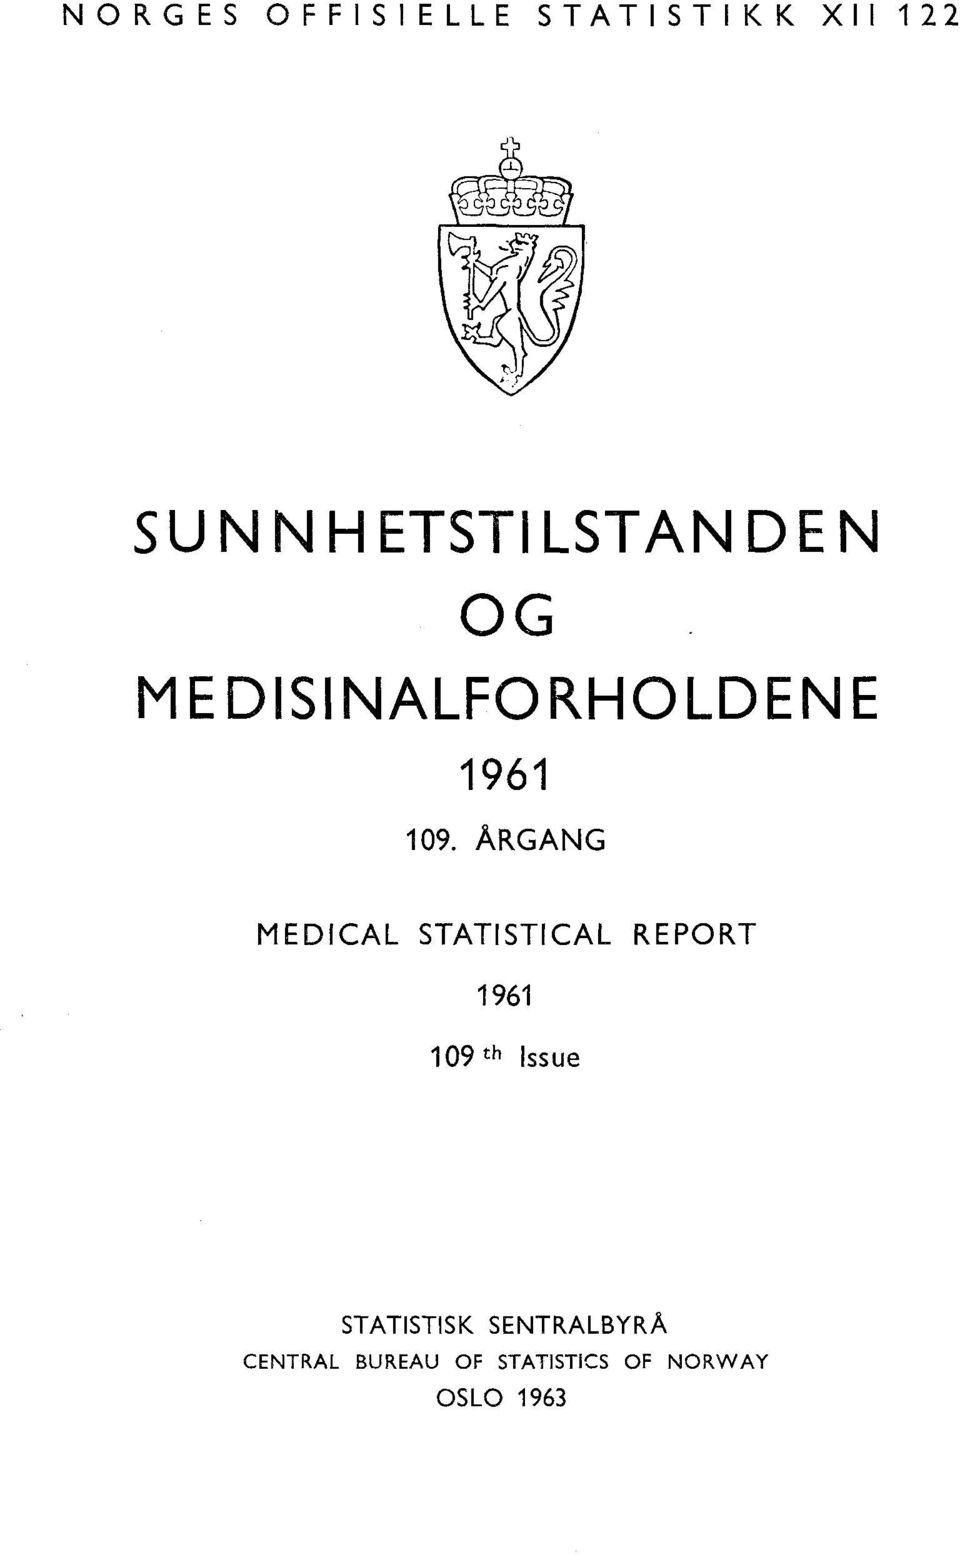 ARGANG MEDICAL STATISTICAL REPORT 96 09 th Issue